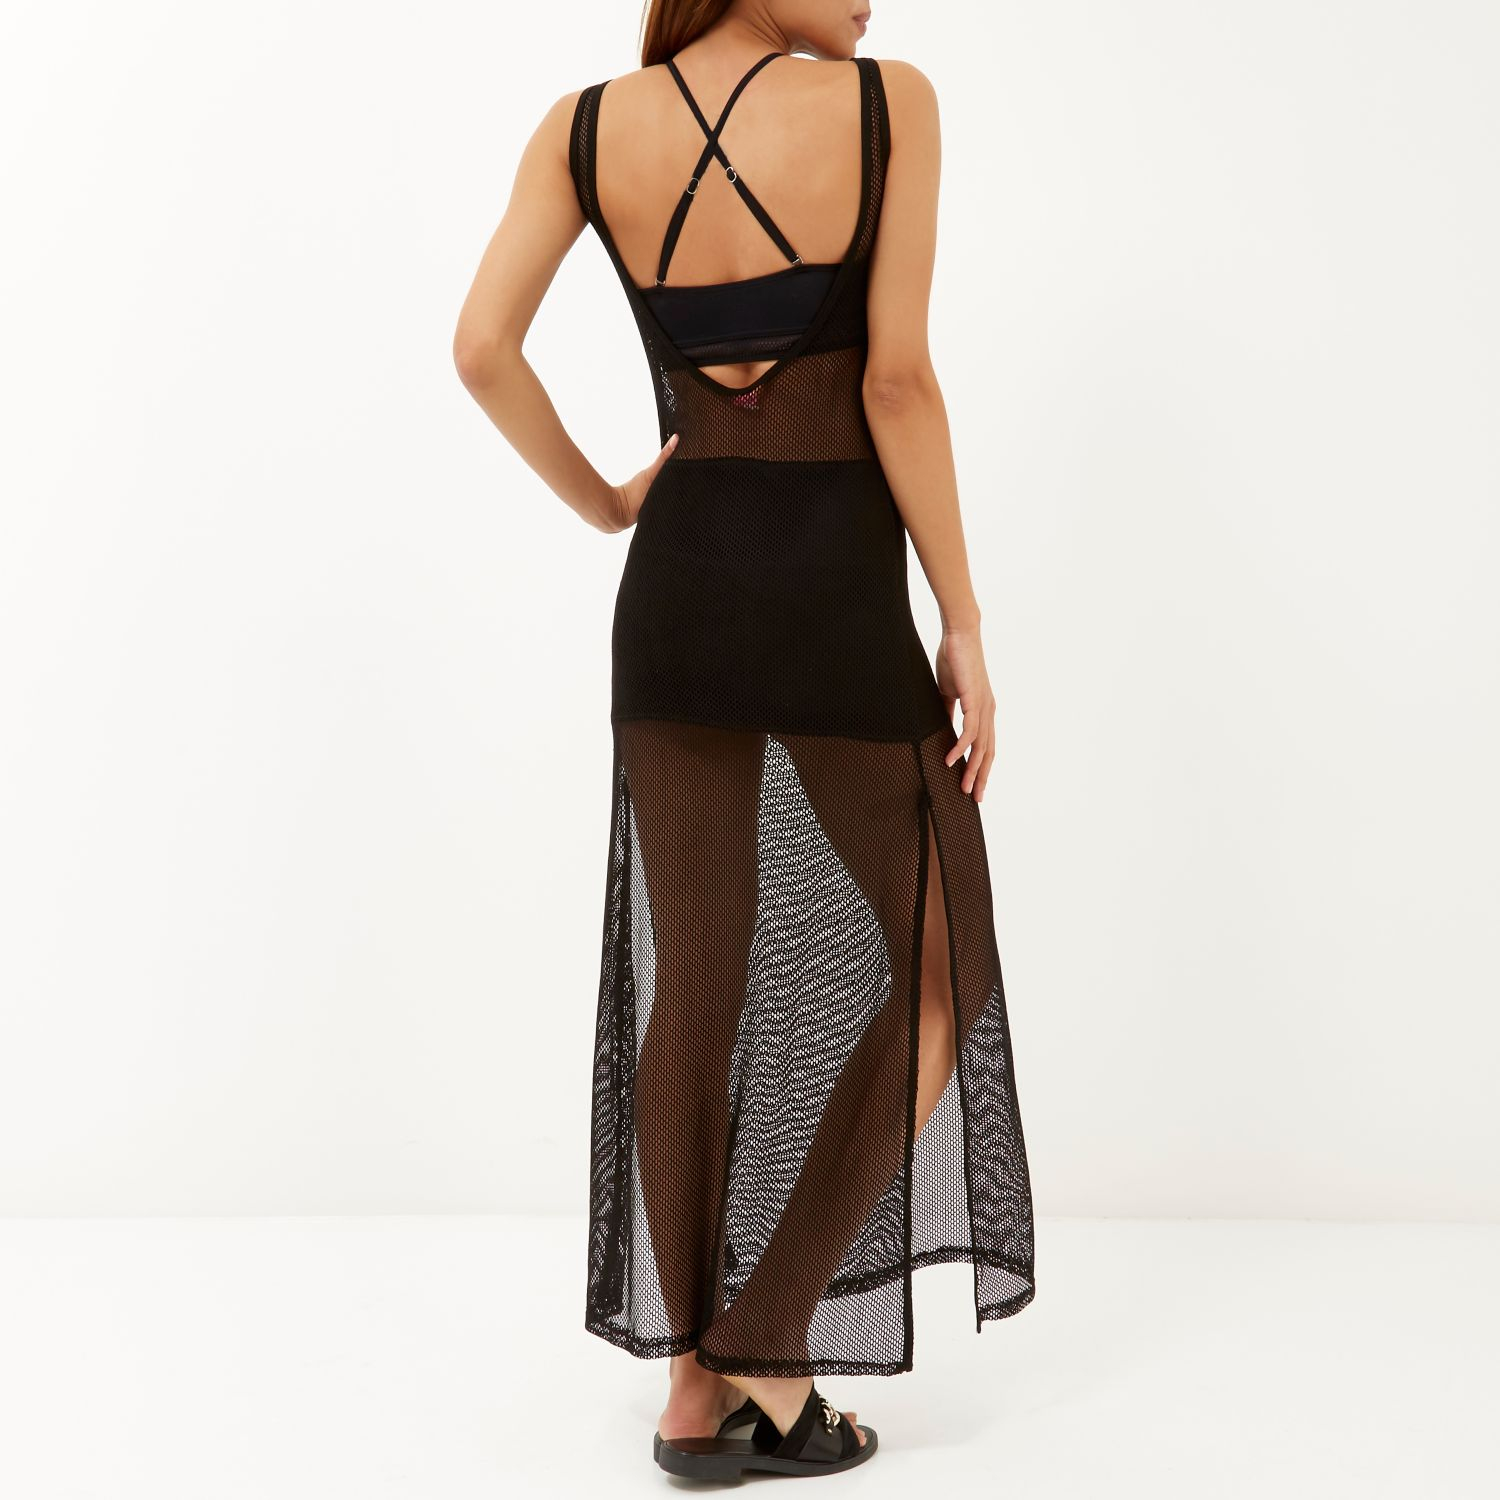 River island maxi dress with metal necklace